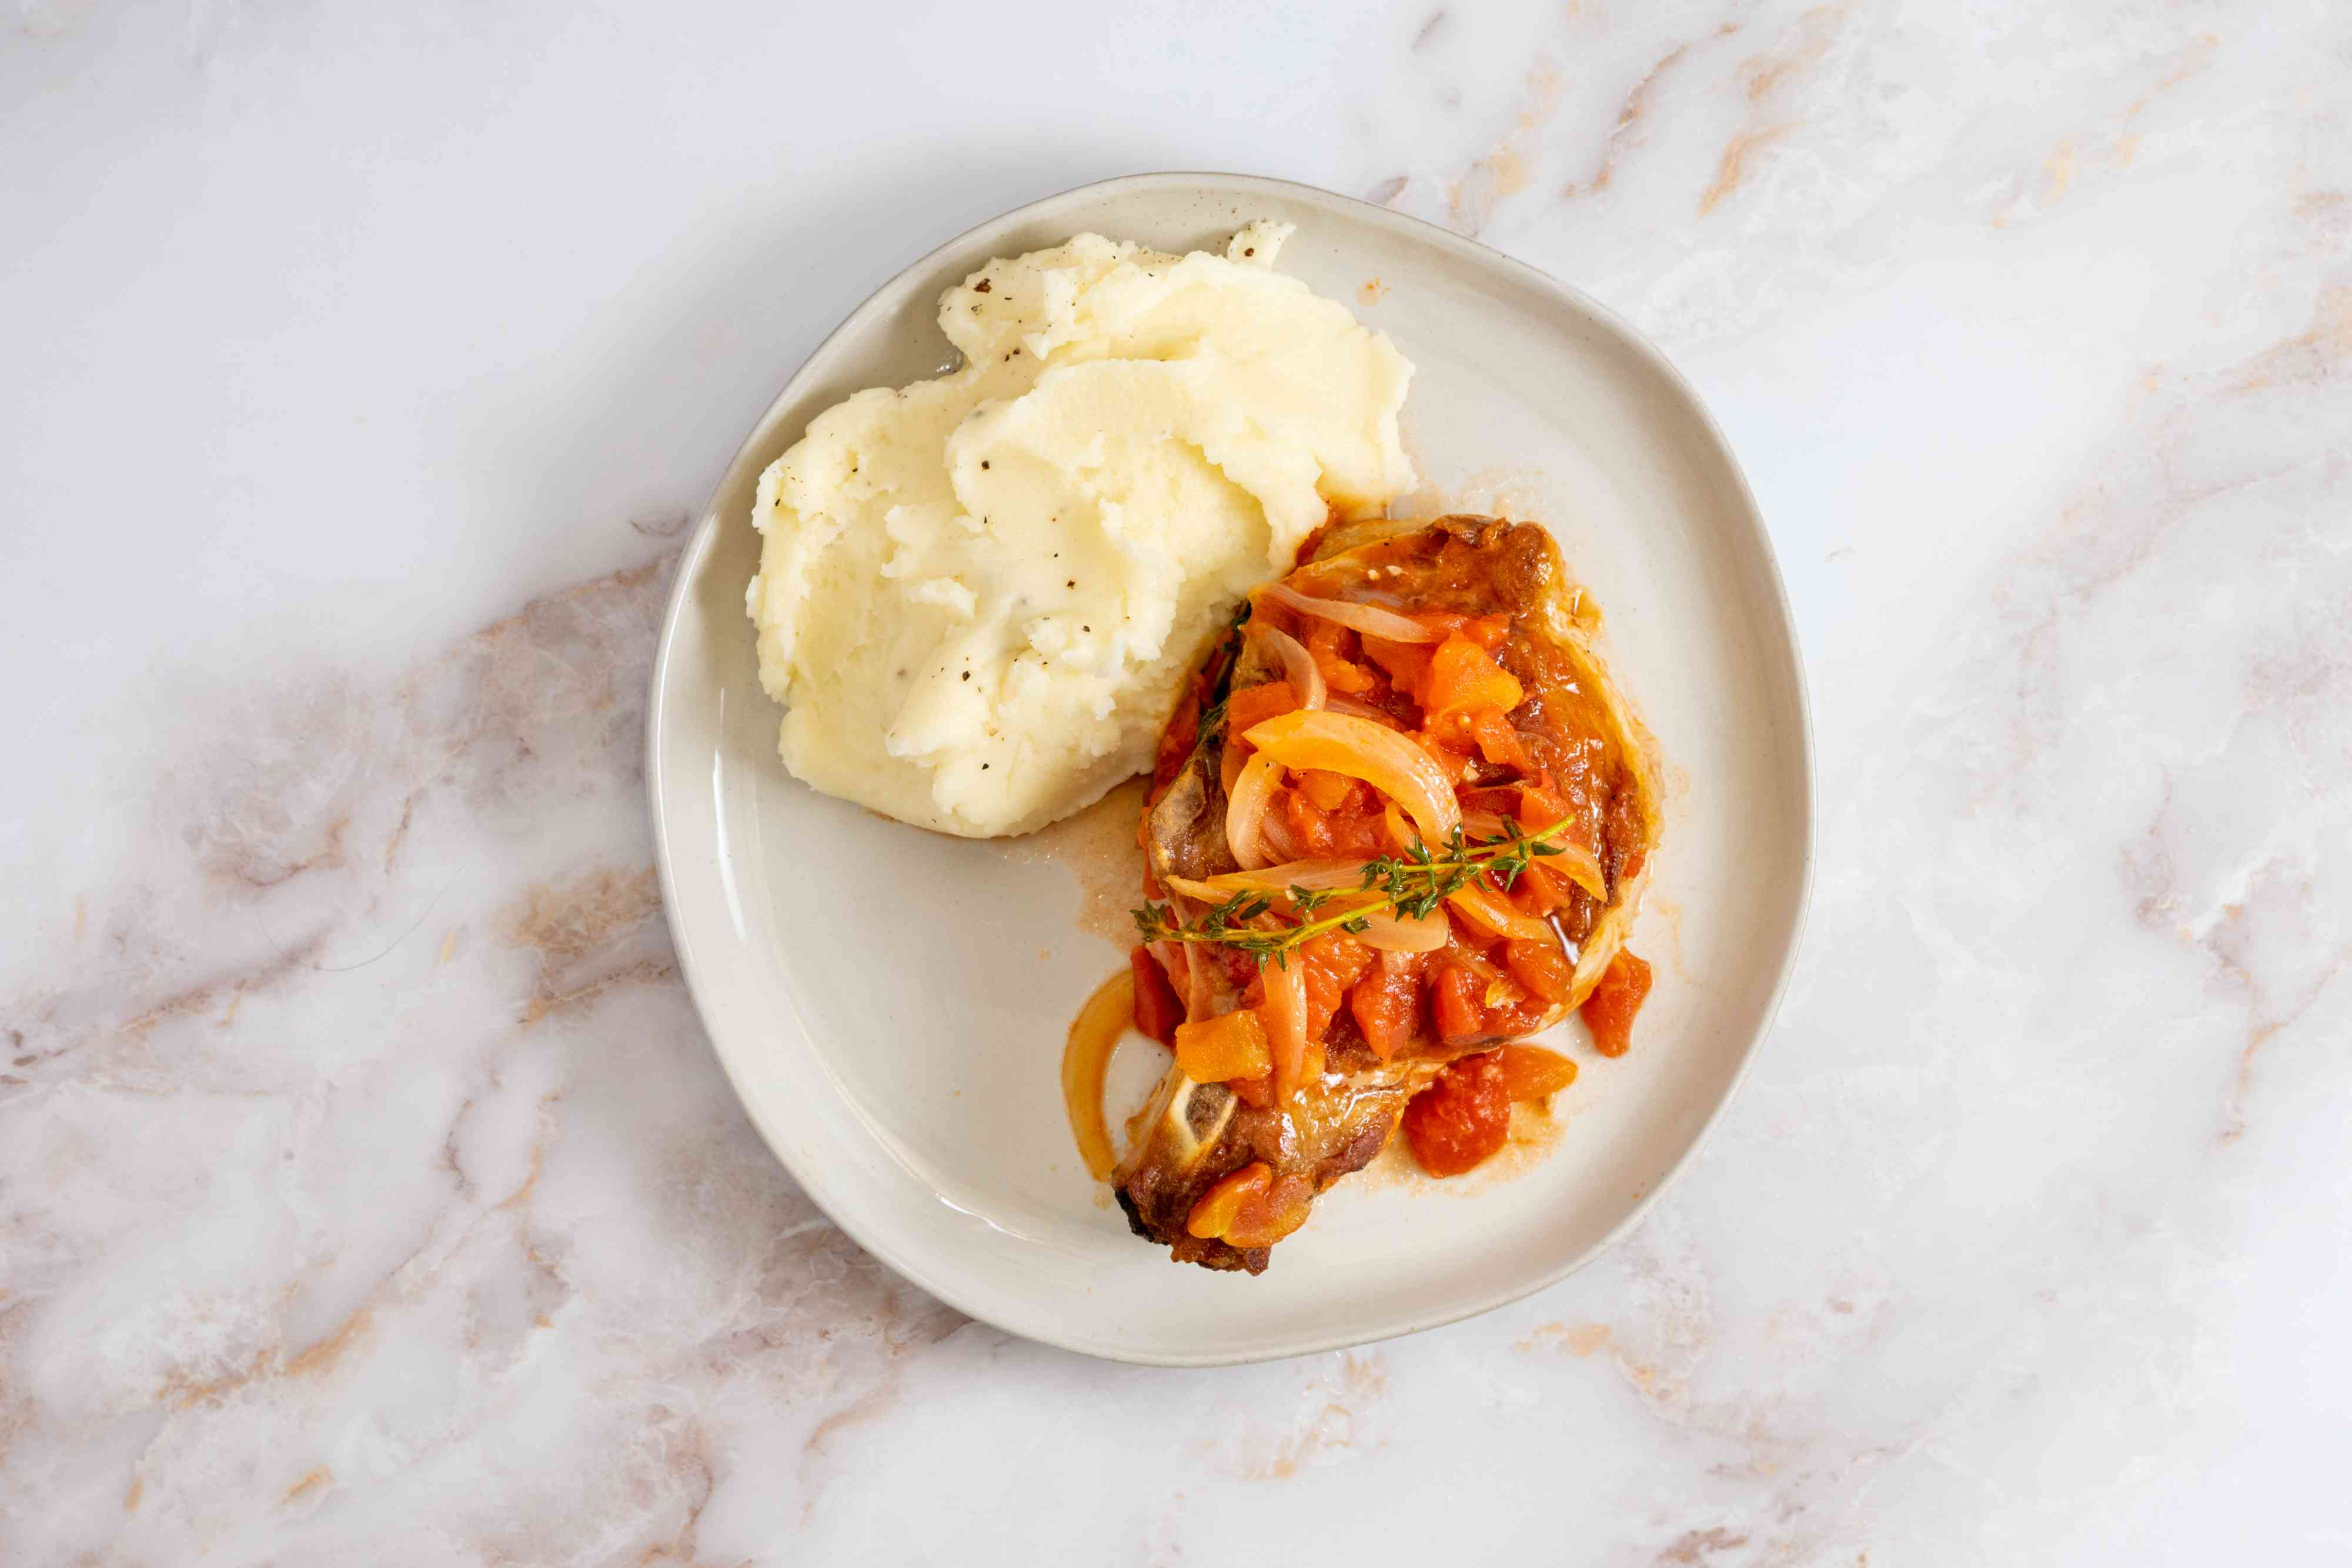 Pork Chops With Tomatoes and Garlic served with mashed potatoes